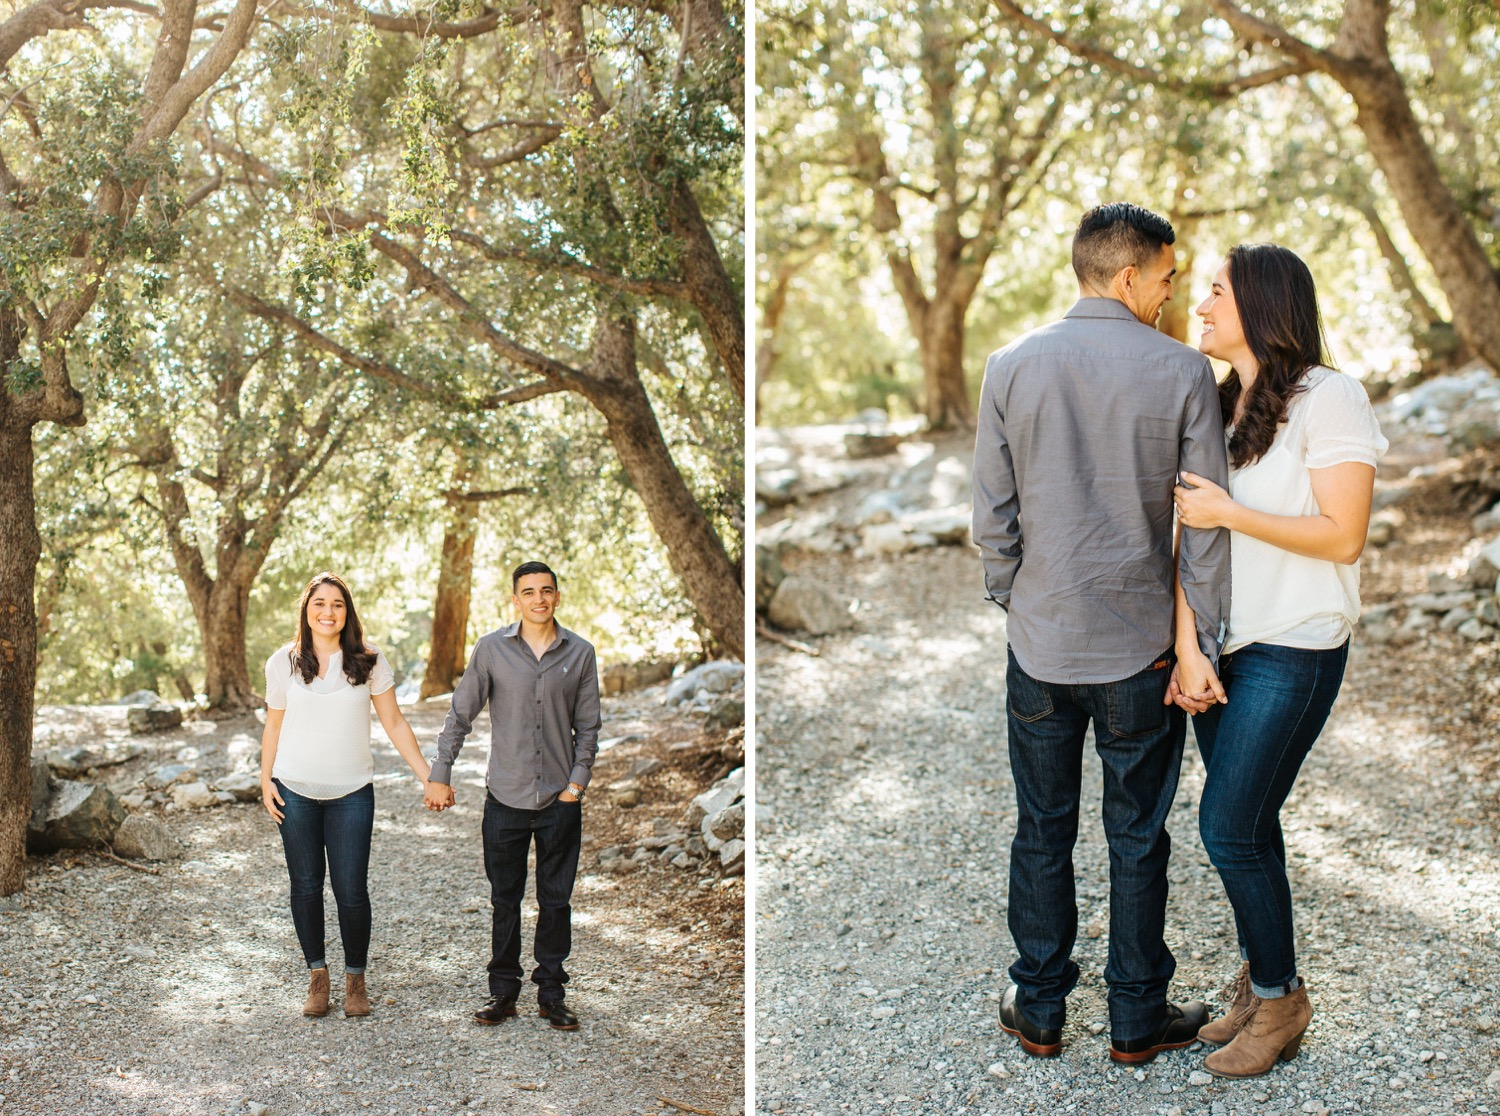 Romantic Mountain Engagement Session in Mt. Baldy - https://brittneyhannonphotography.com